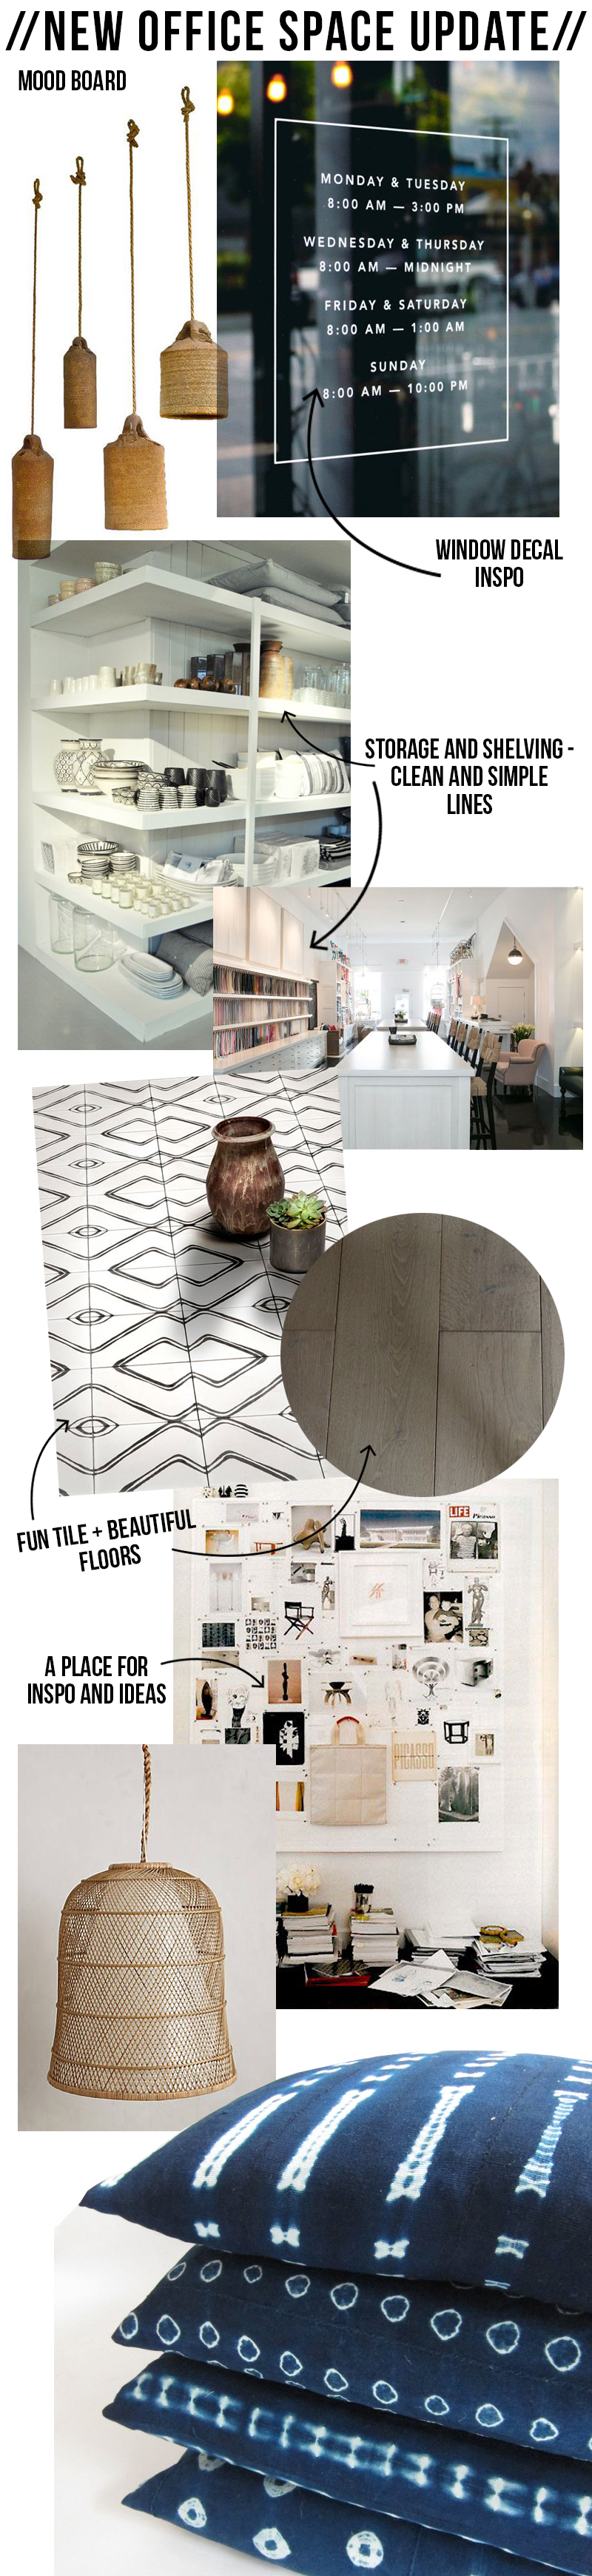 Amber Interiors - New Office Mood Board